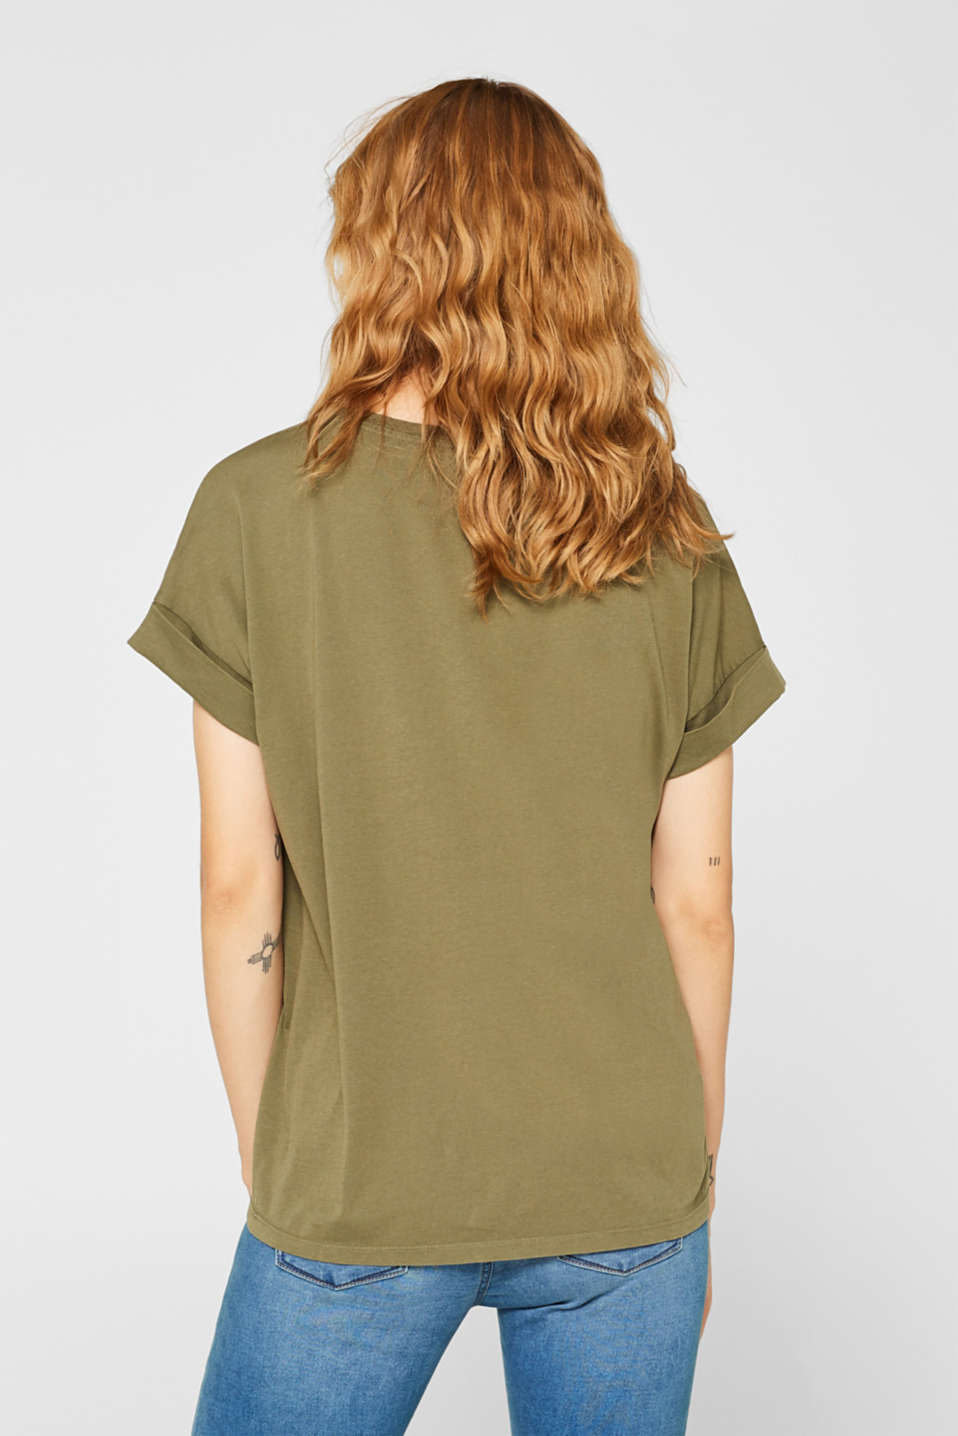 T-shirt with a casual cut, 100% cotton, KHAKI GREEN, detail image number 3